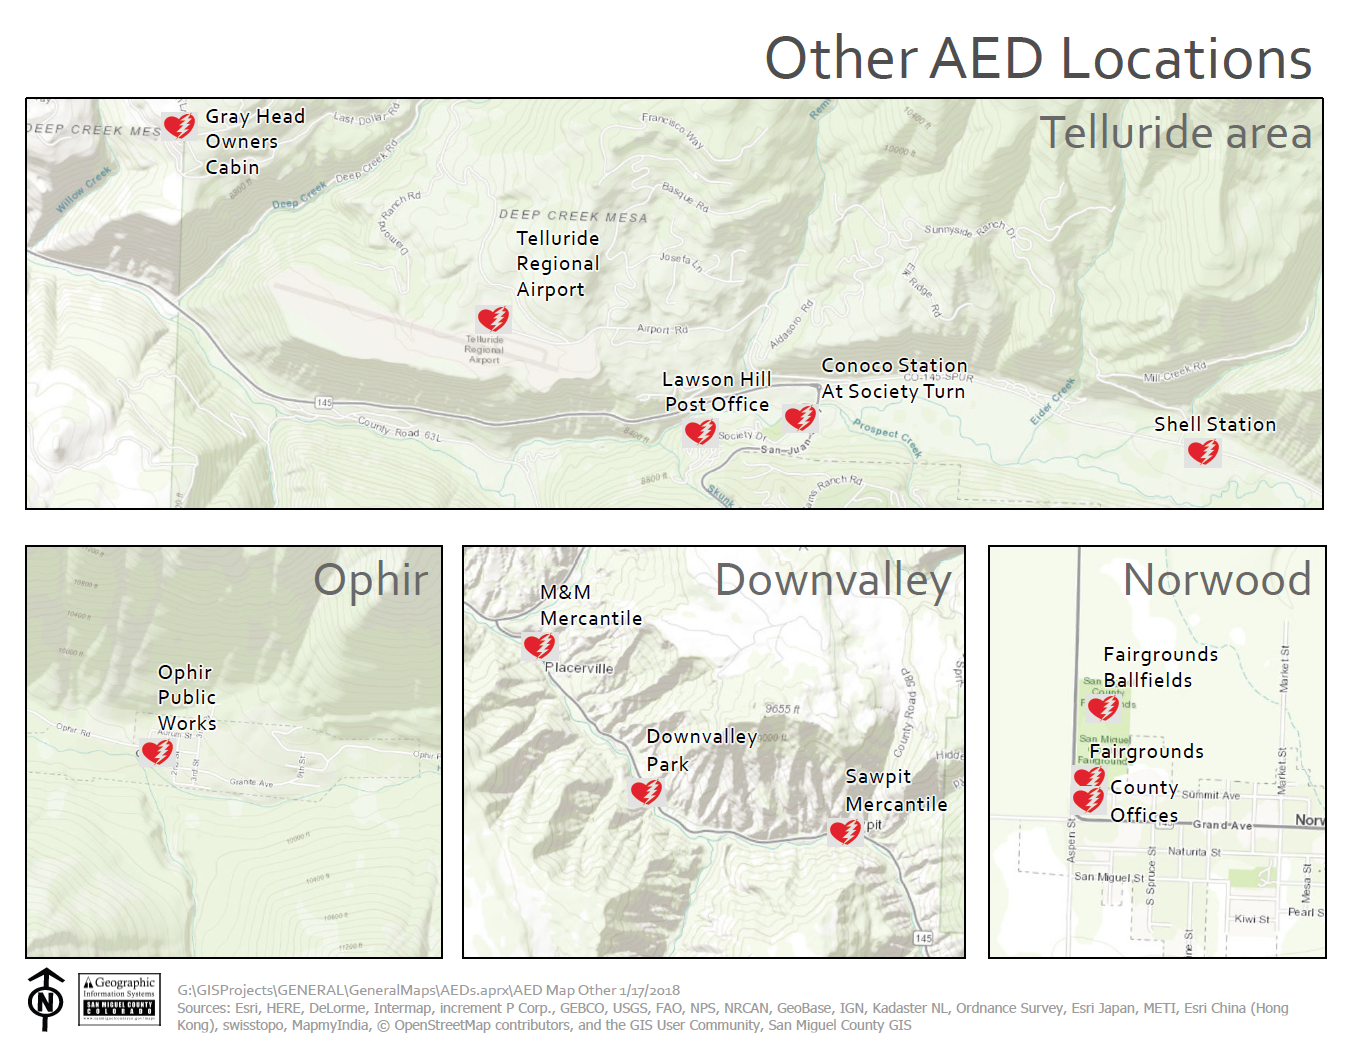 AED-telluride area.png